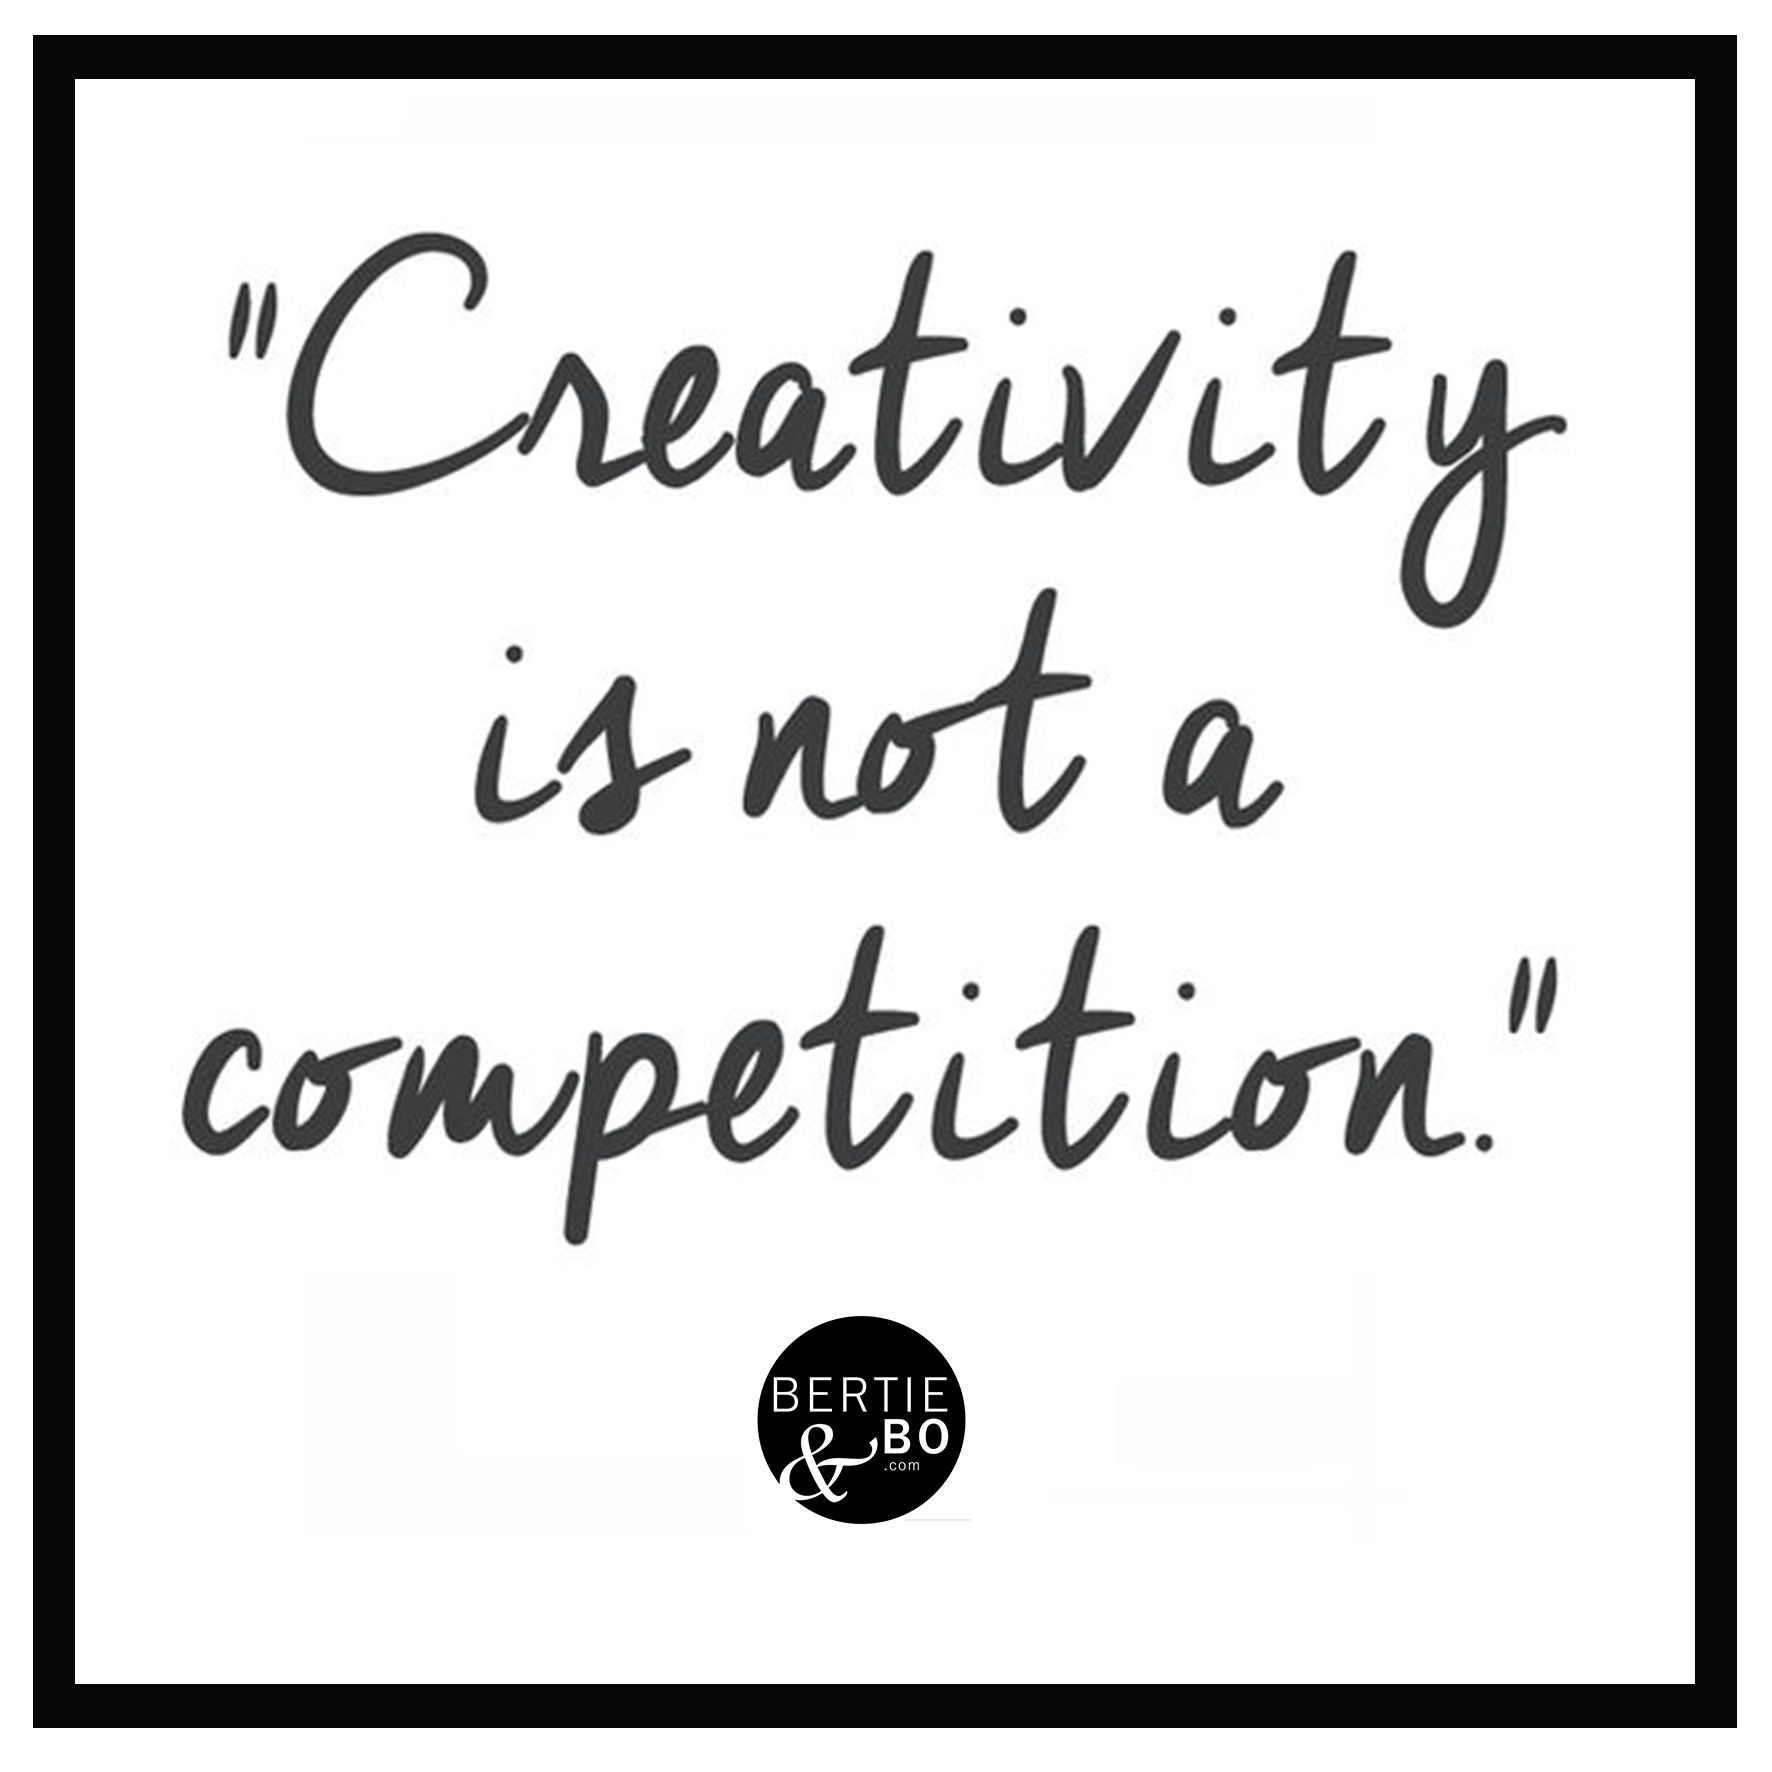 Creativity is not a competition quote #bertieandbo www.bertieandbo.com